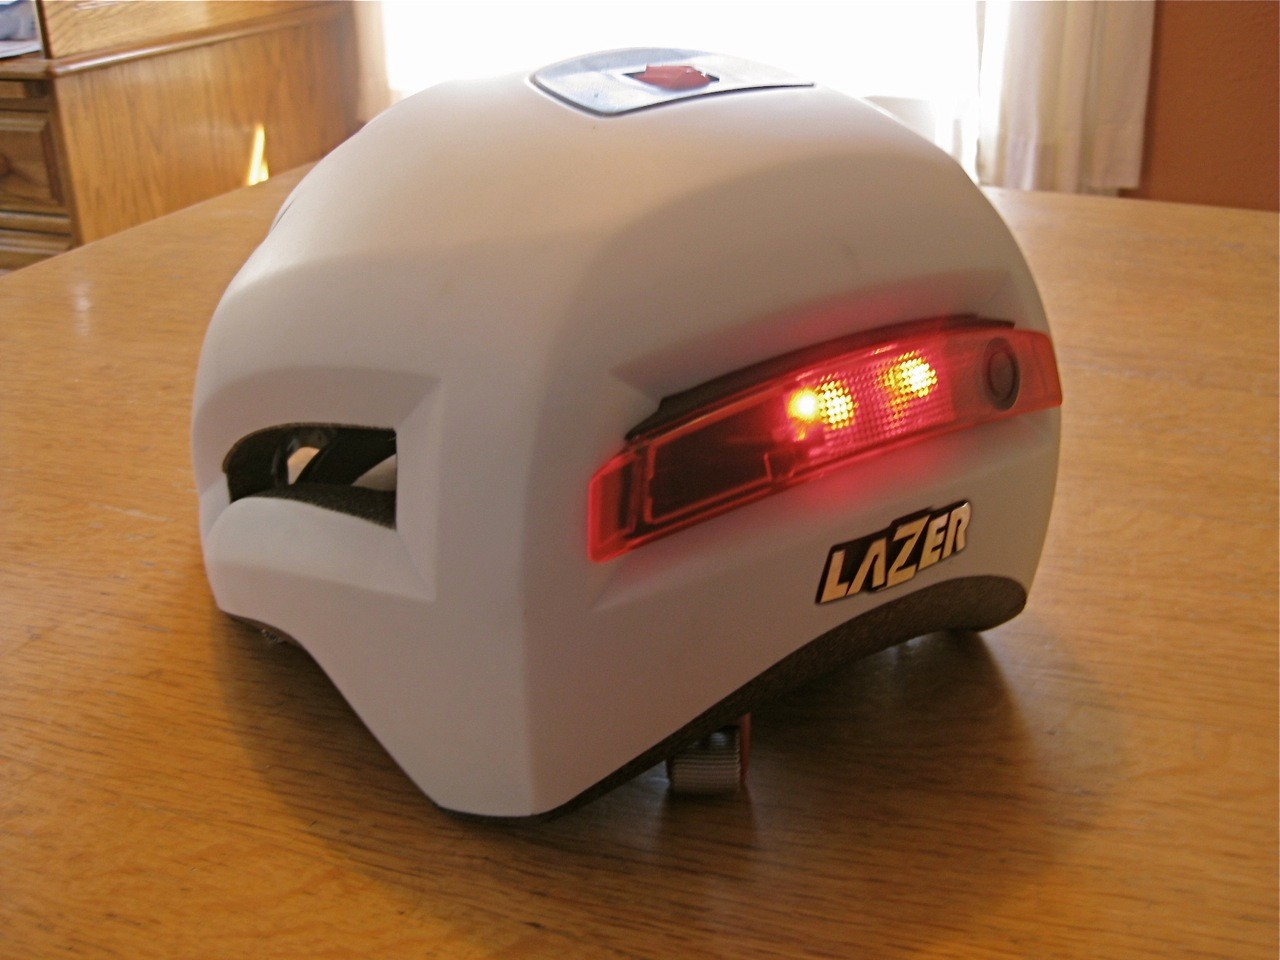 Lazer's patented Rollsys top-mount adjuster makes fit a snap, and the light switches are easy to use. And it bears an uncanny resemblence to a Sinclair C5